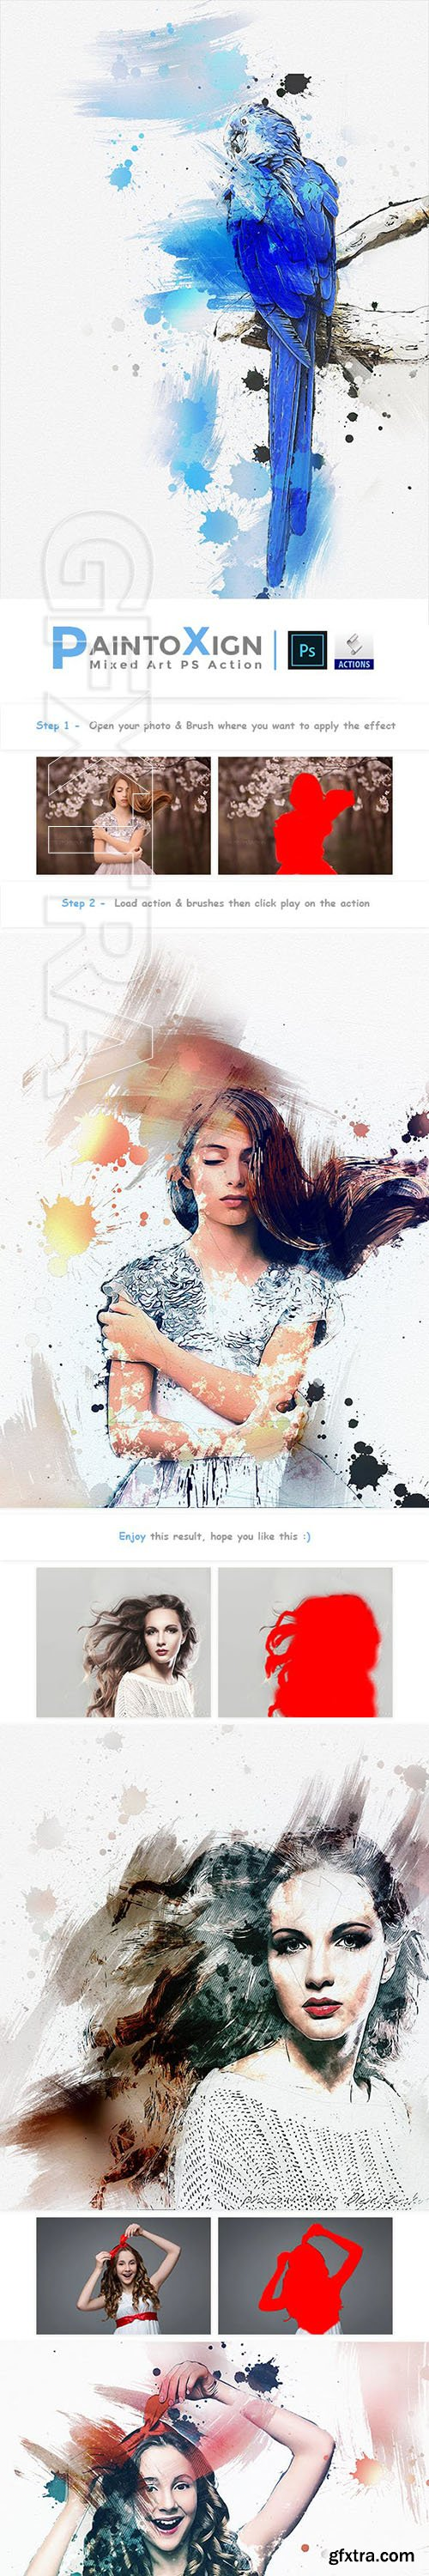 GraphicRiver - PaintoXign Mixed Art PS Action 23106638